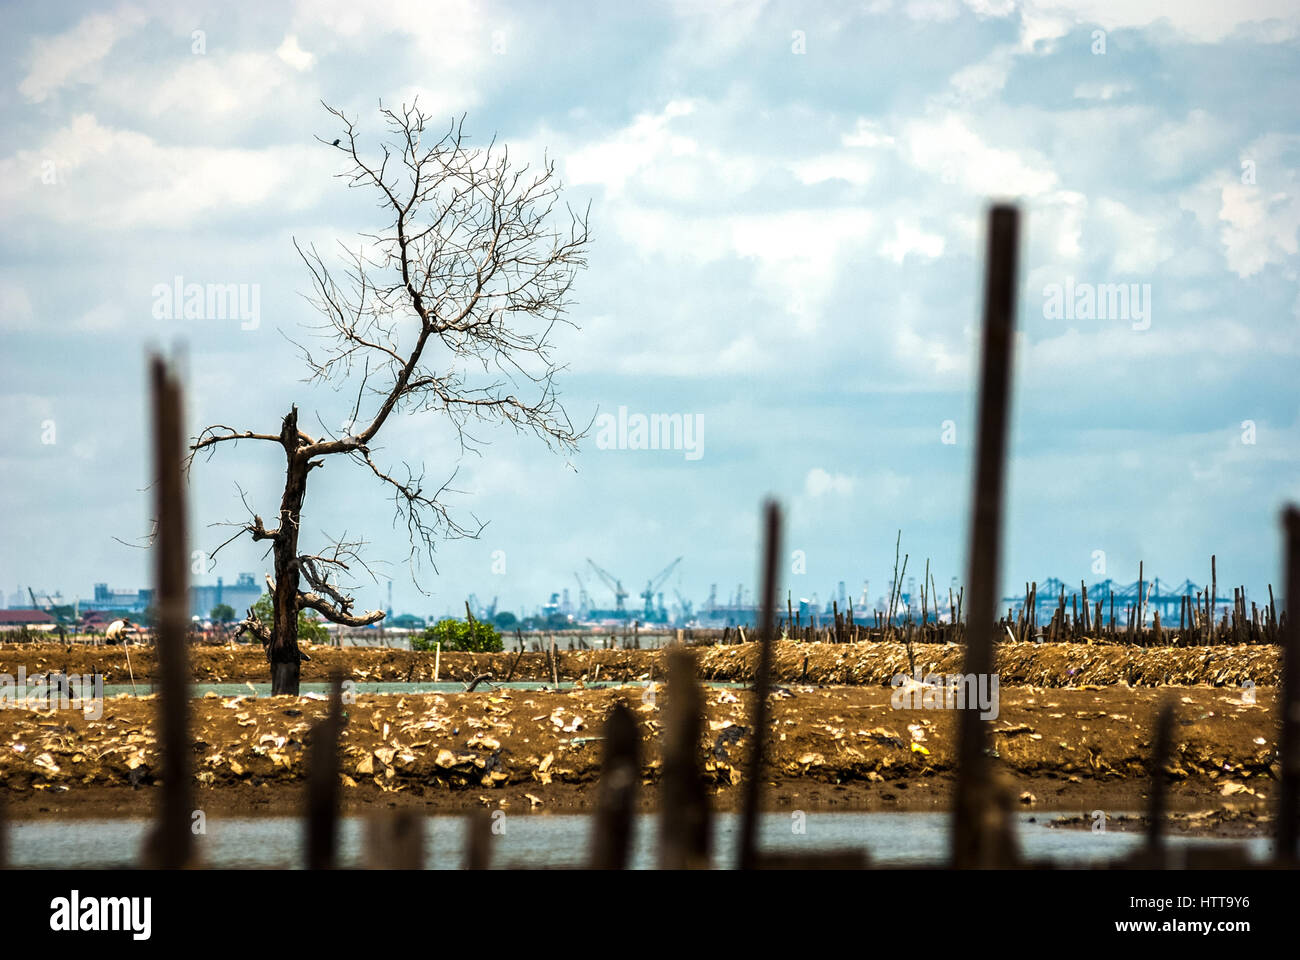 A view of a reclaimed land in North Jakarta, Indonesia. © Reynold Sumayku - Stock Image